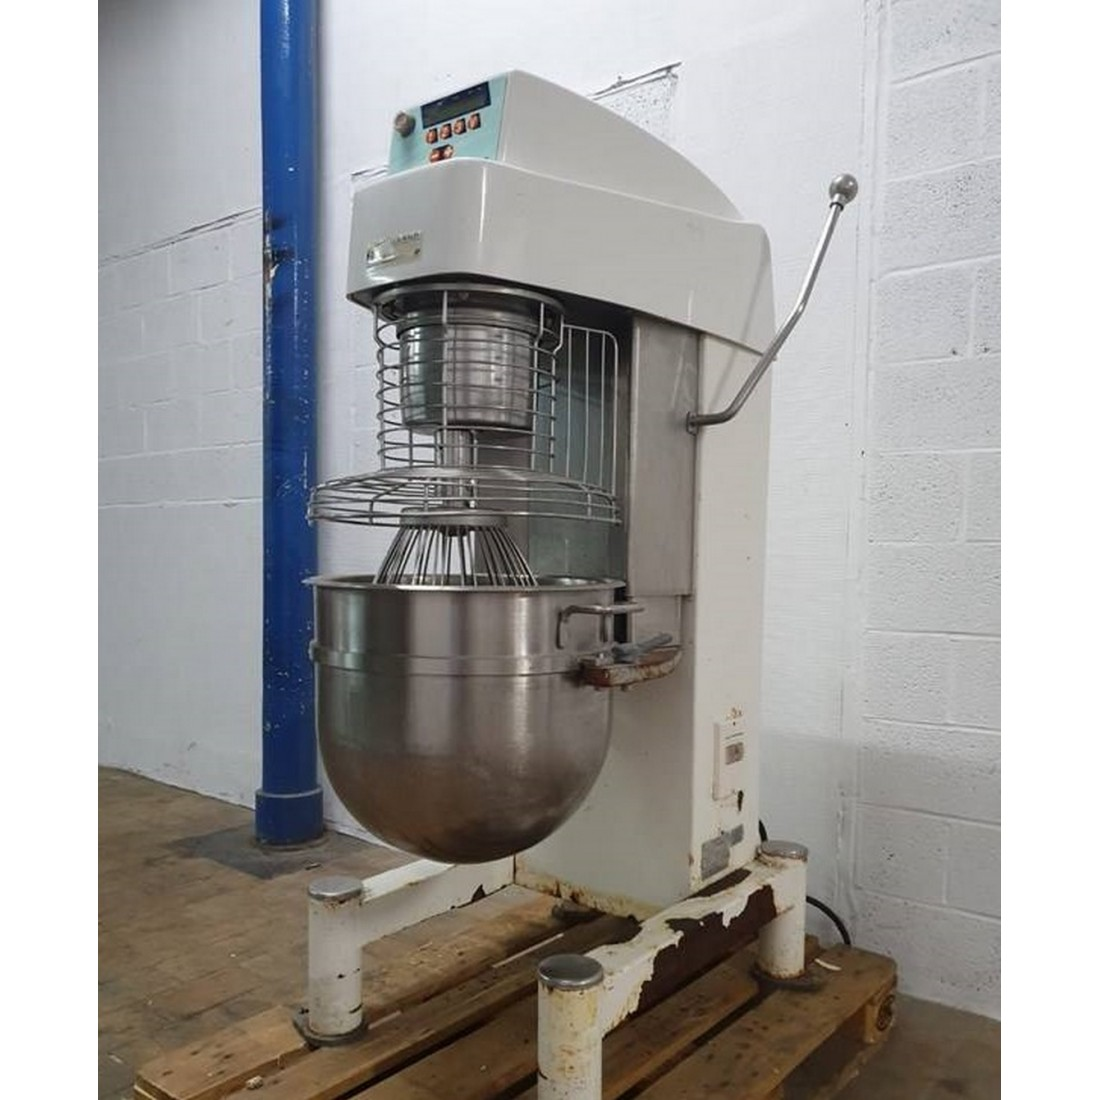 R6MP115 Stainless steel VMI planetary mixer Type PH602 EV - 60 liters